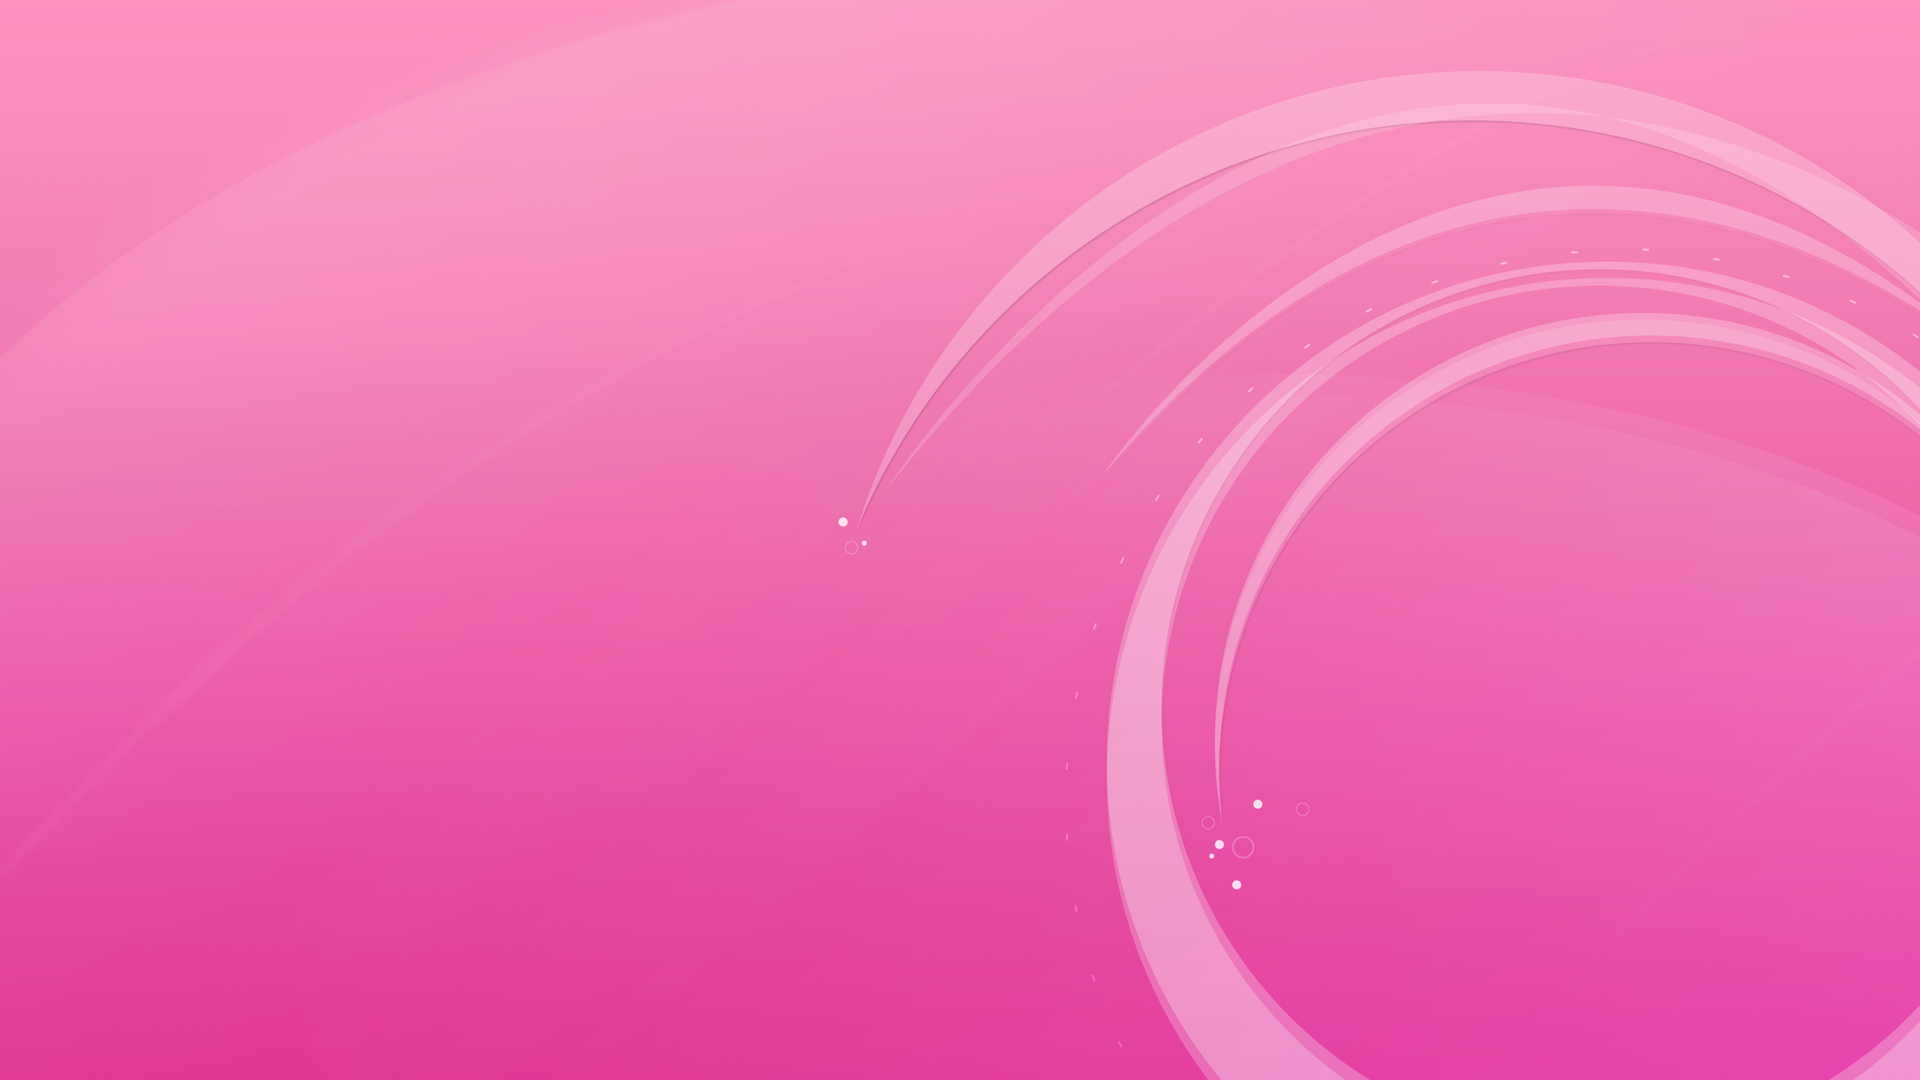 Pink background wallpaper hd